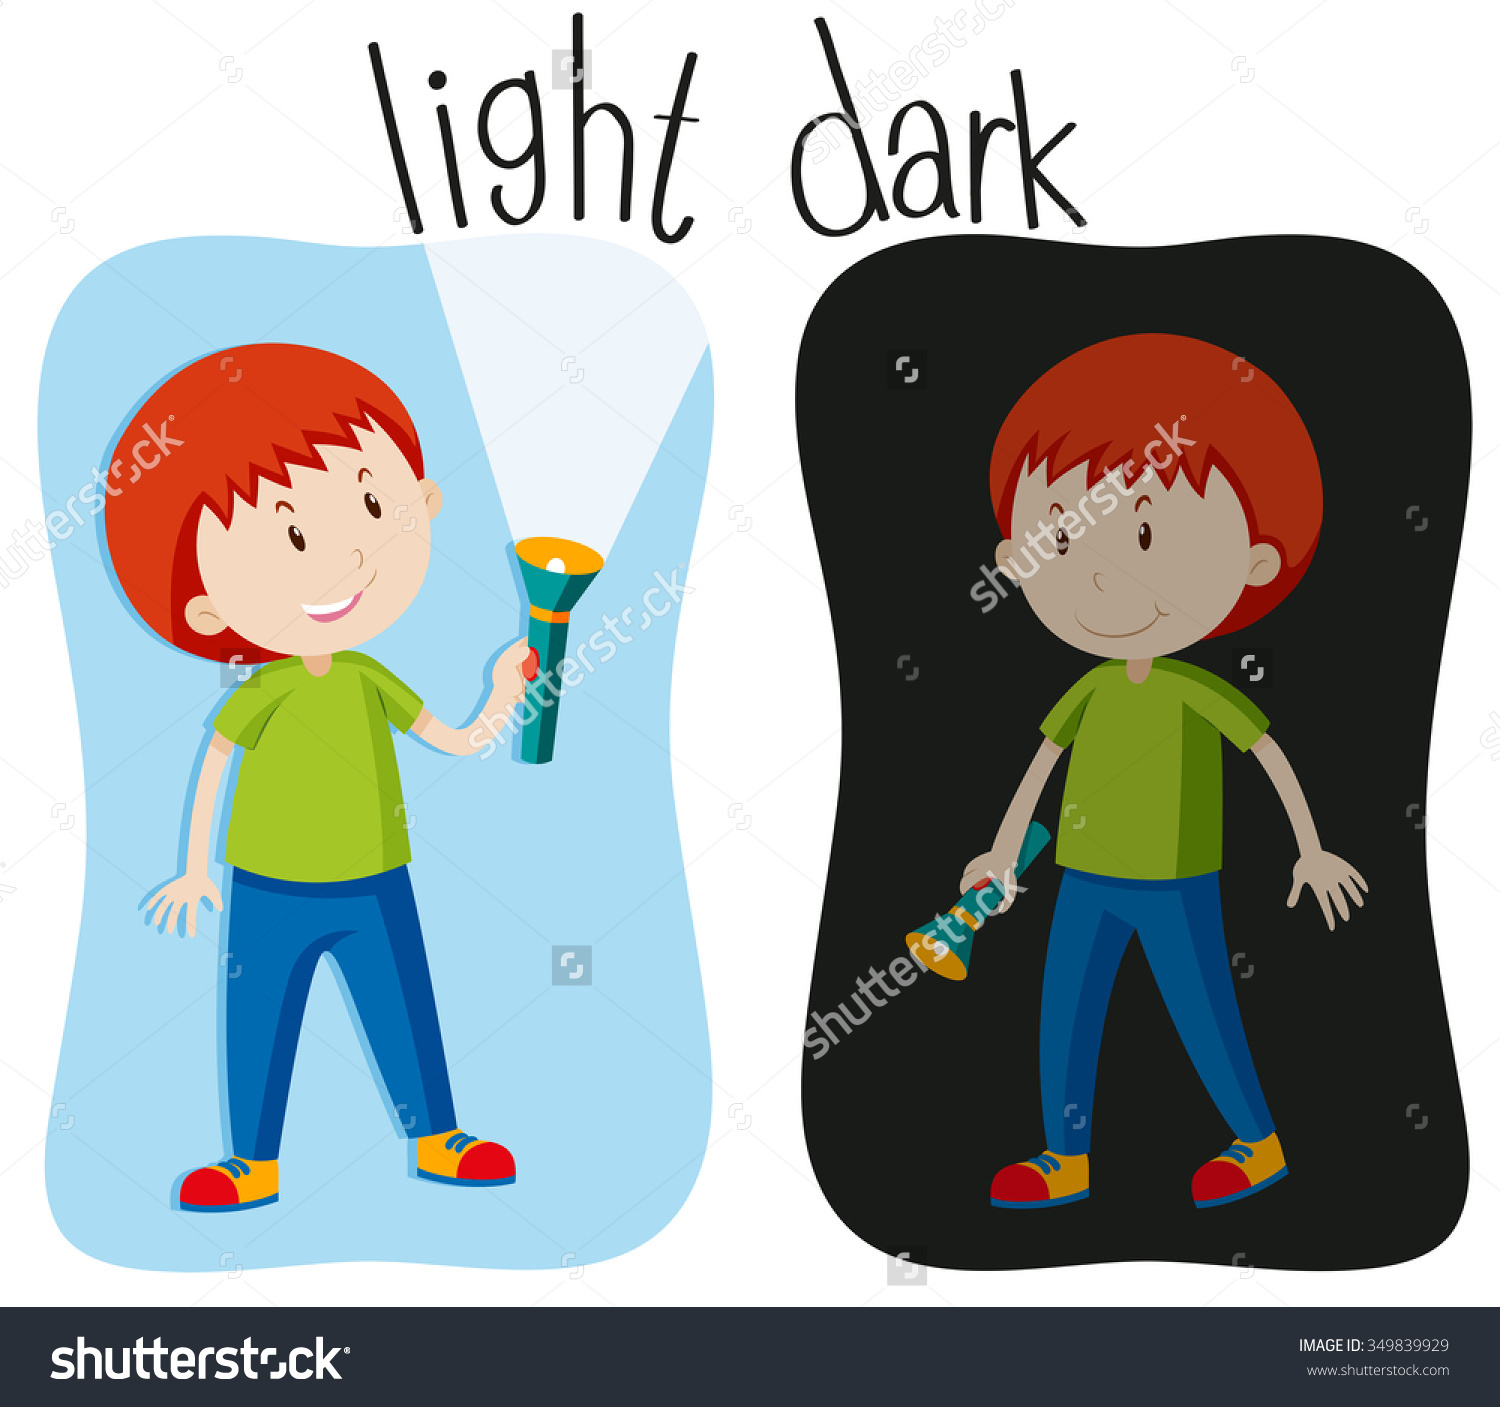 Opposite Adjectives Light Dark Illustration Stock Vector 349839929.